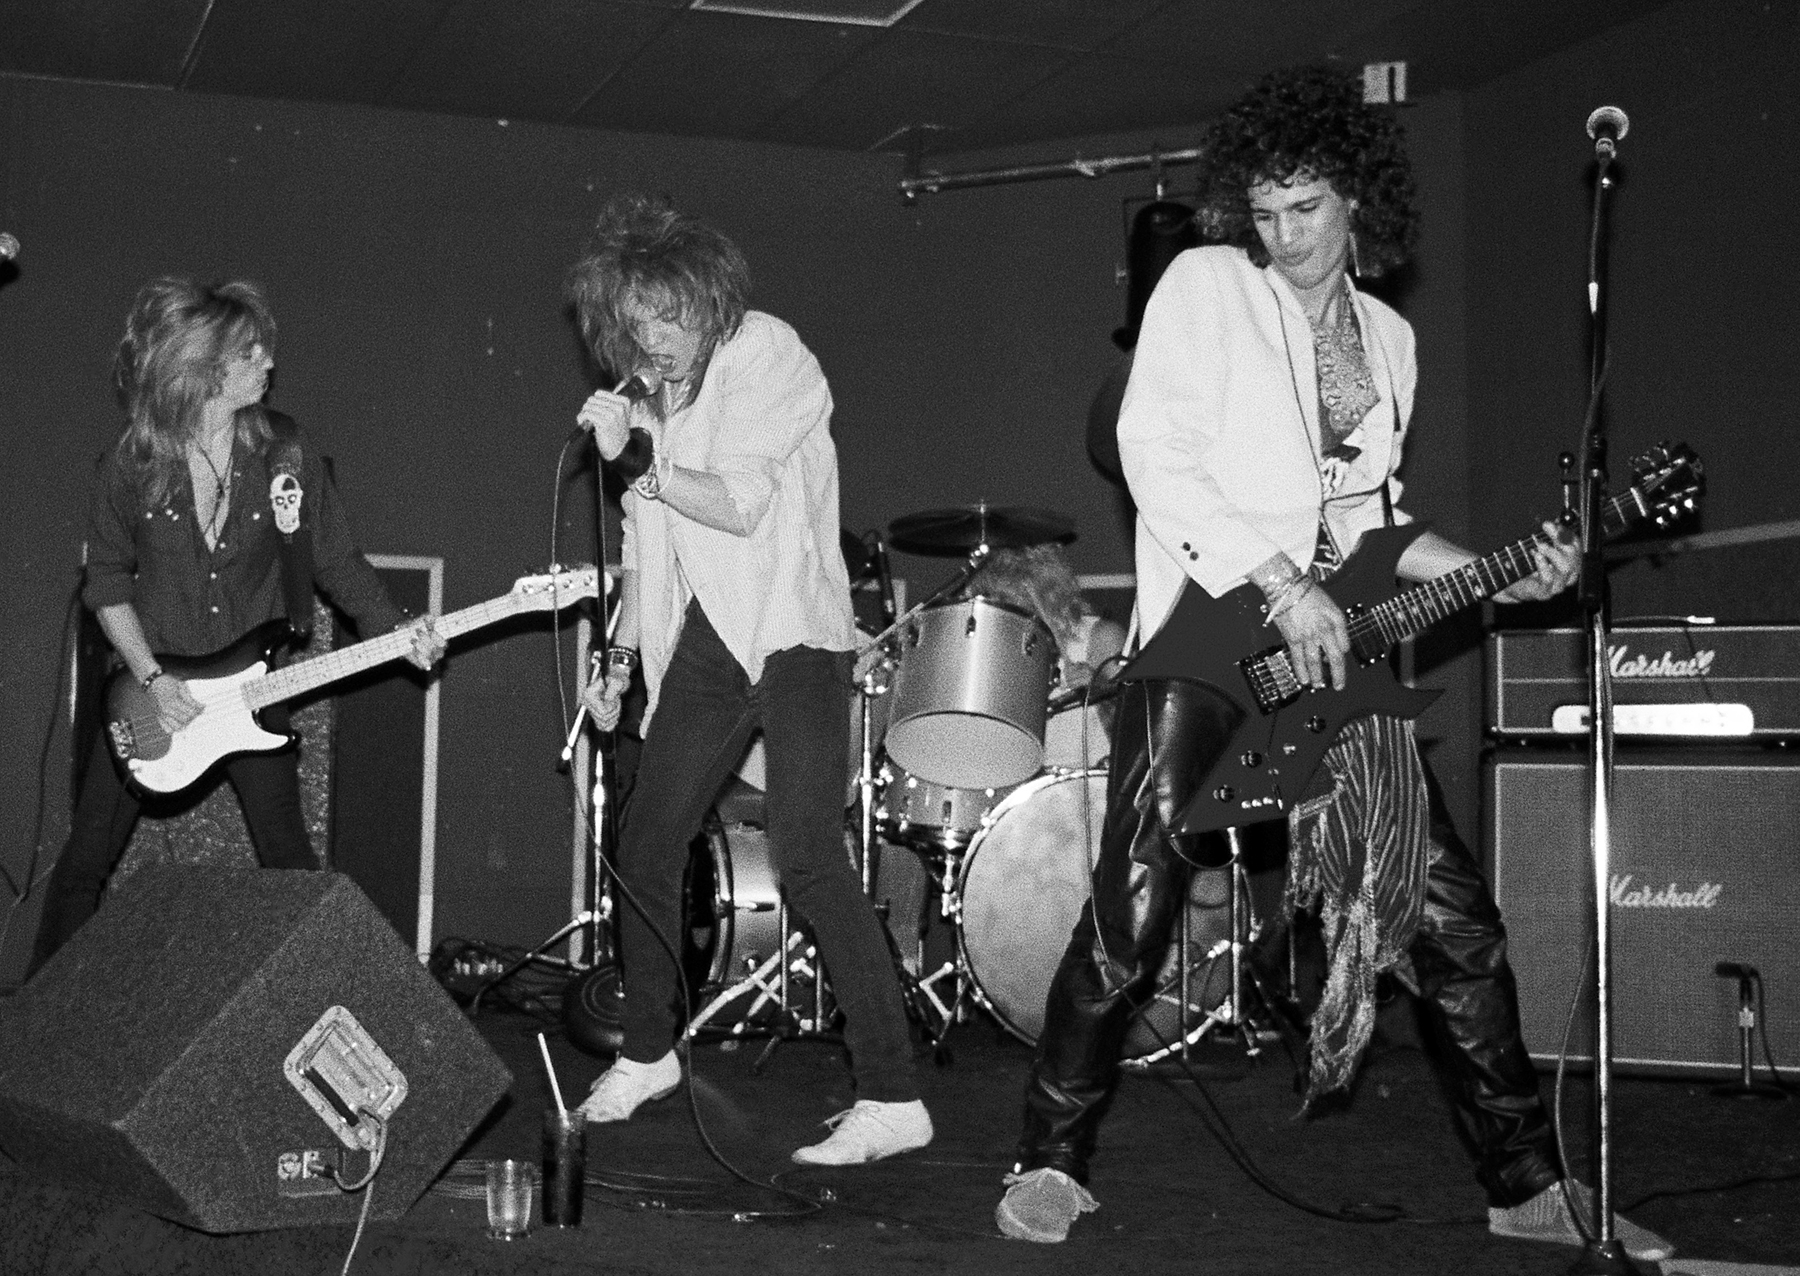 LOS ANGELES - JUNE 28: (L-R) Steve Darrow, Axl Rose, Steven Adler (behind the drums) and Slash of the rock group 'Hollywood Rose' perform at the Madame Wong's East on June 28, 1984 in Los Angeles, California. (Photo by Marc S Canter/Michael Ochs Archives/Getty Images)